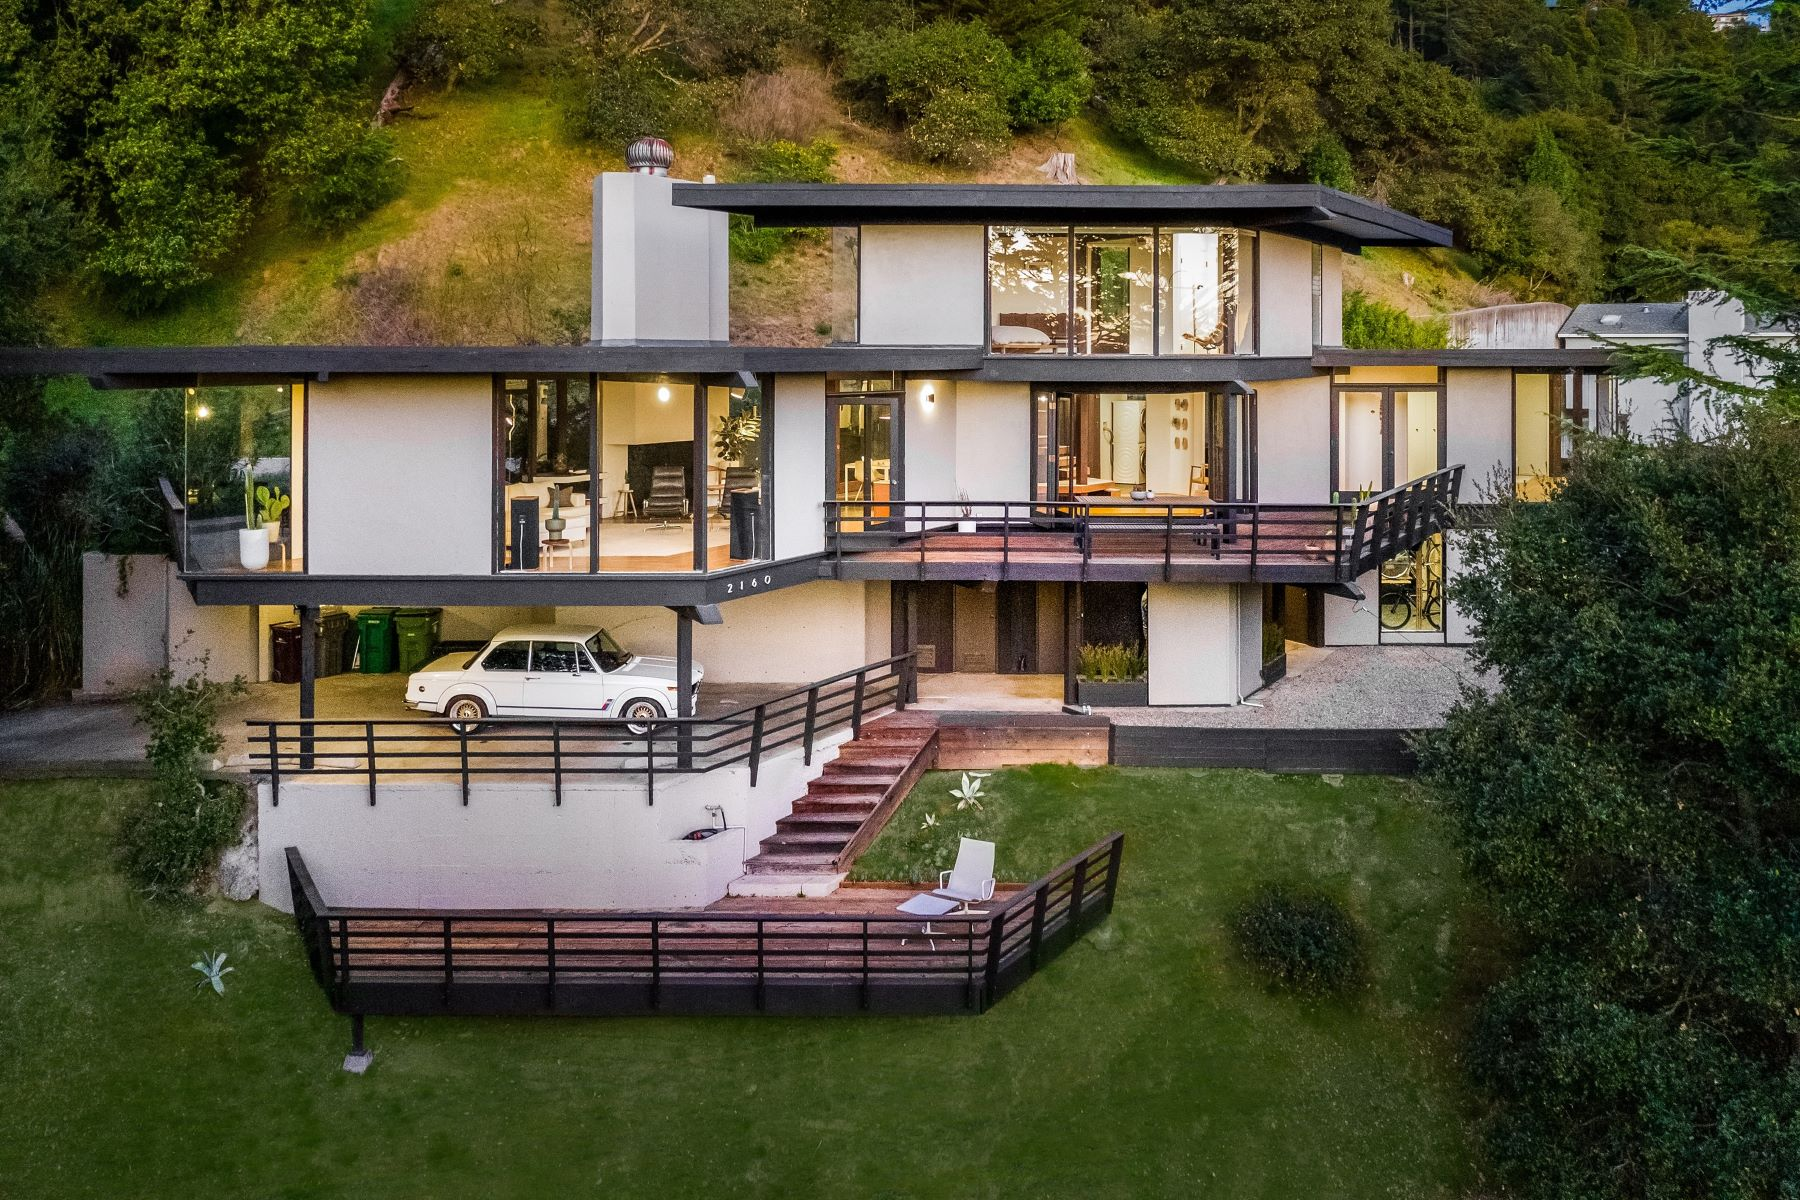 Single Family Homes for Active at Ultra-Rare Mid-Century Masterpiece 2160 Mastlands Drive Oakland, California 94611 United States